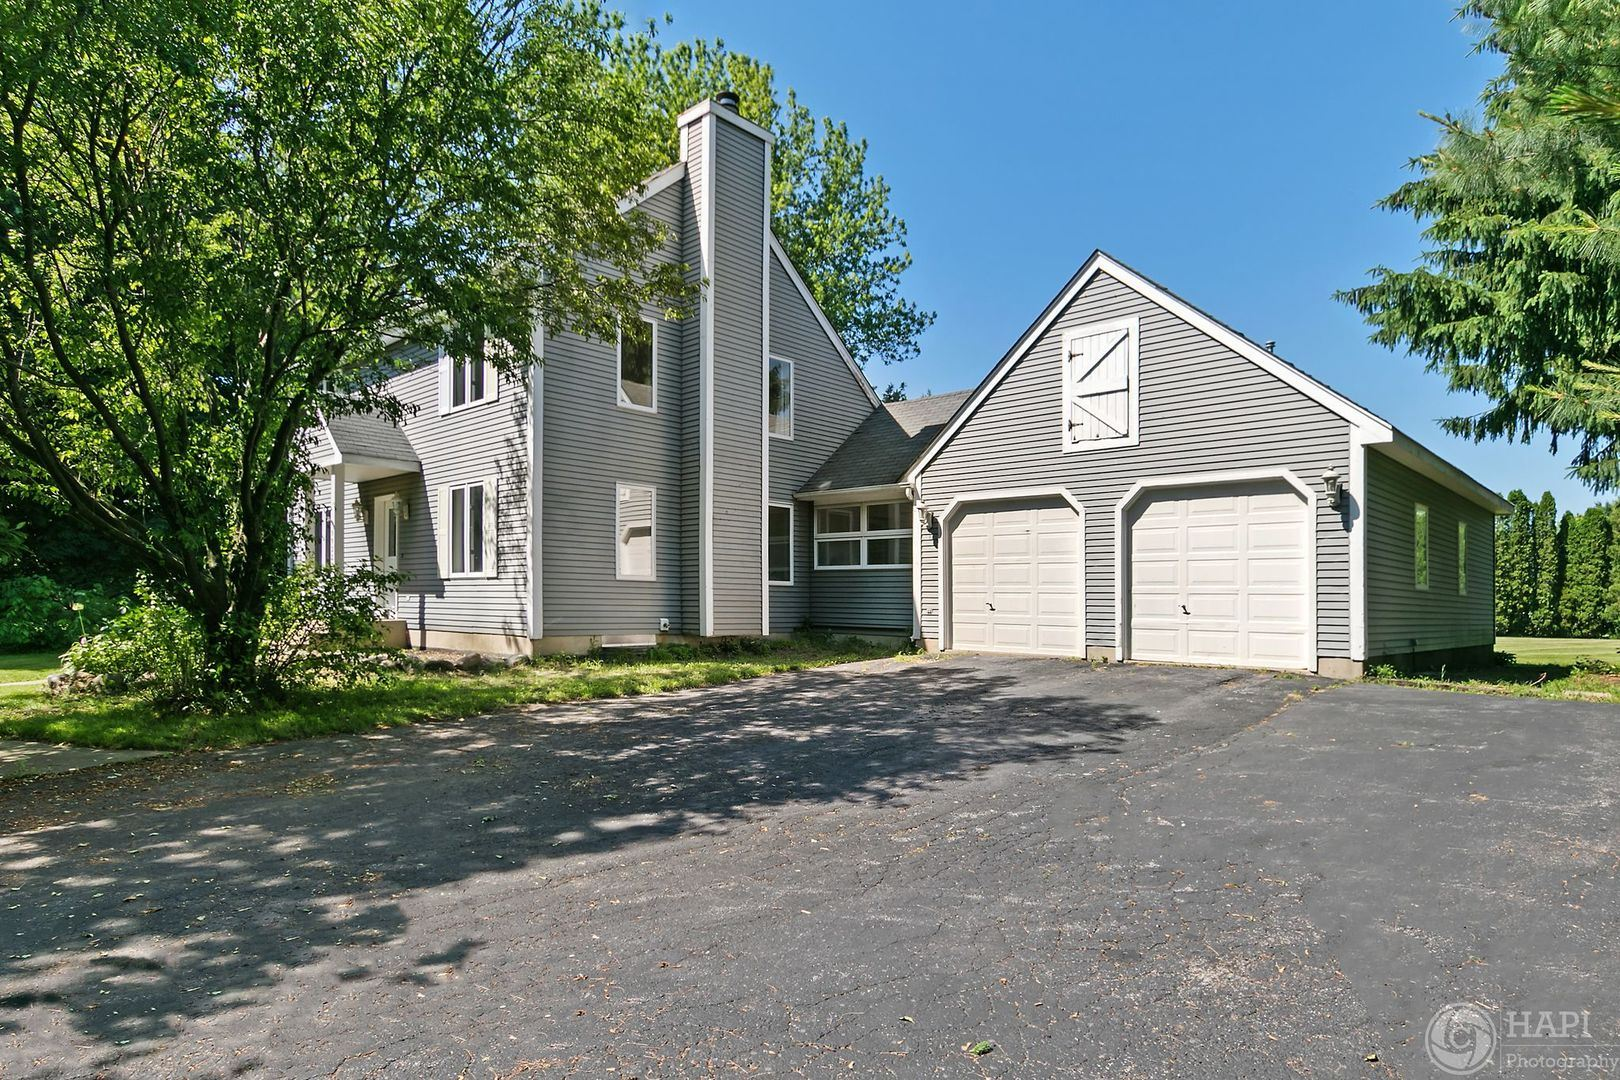 9922 N Hunters Lane, Spring Grove, IL 60081 - #: 10748204